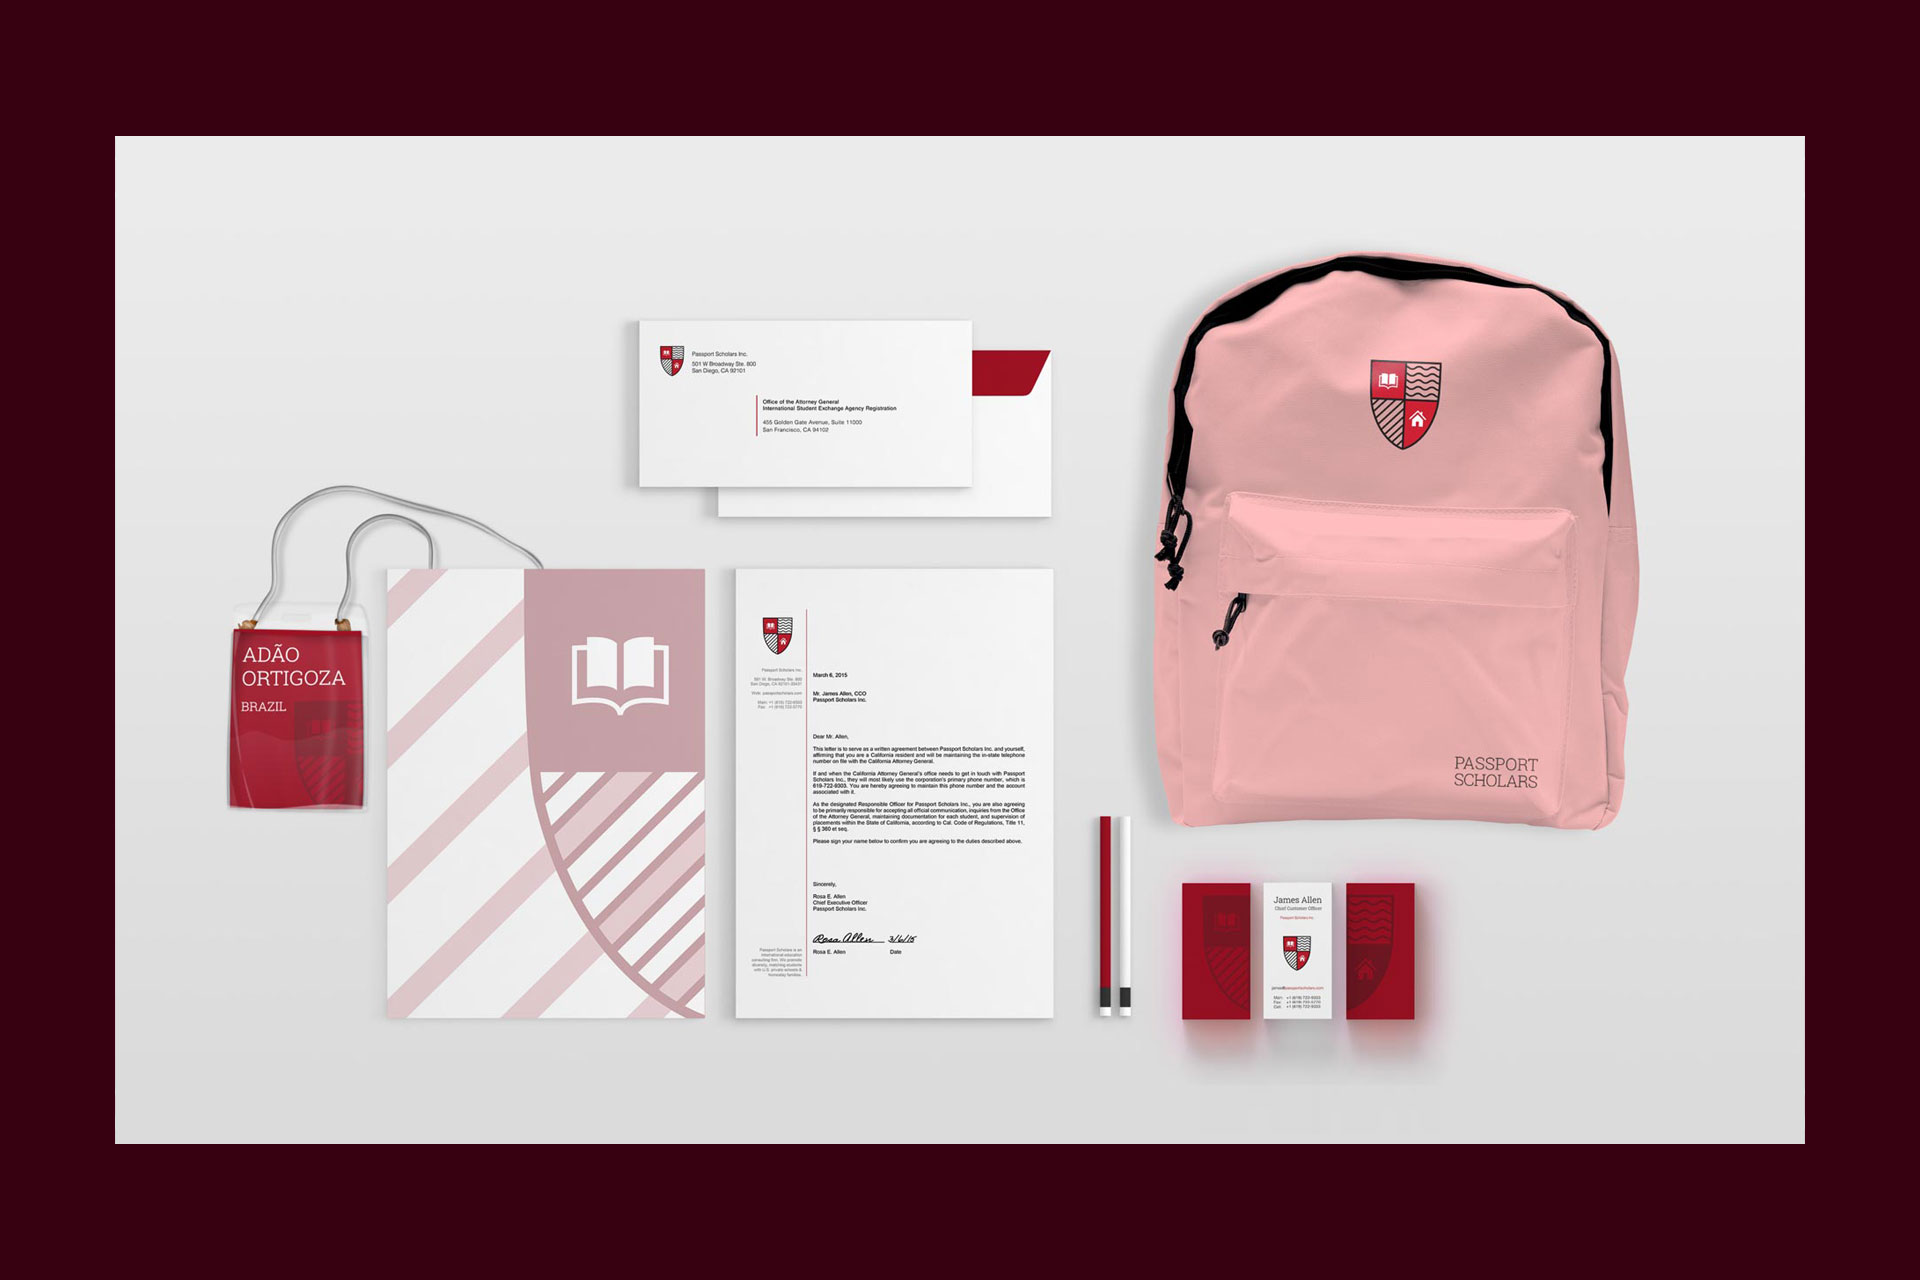 Corporate stationery and a backpack displaying the Passport Scholars logo and brand colors (red, white, and black).